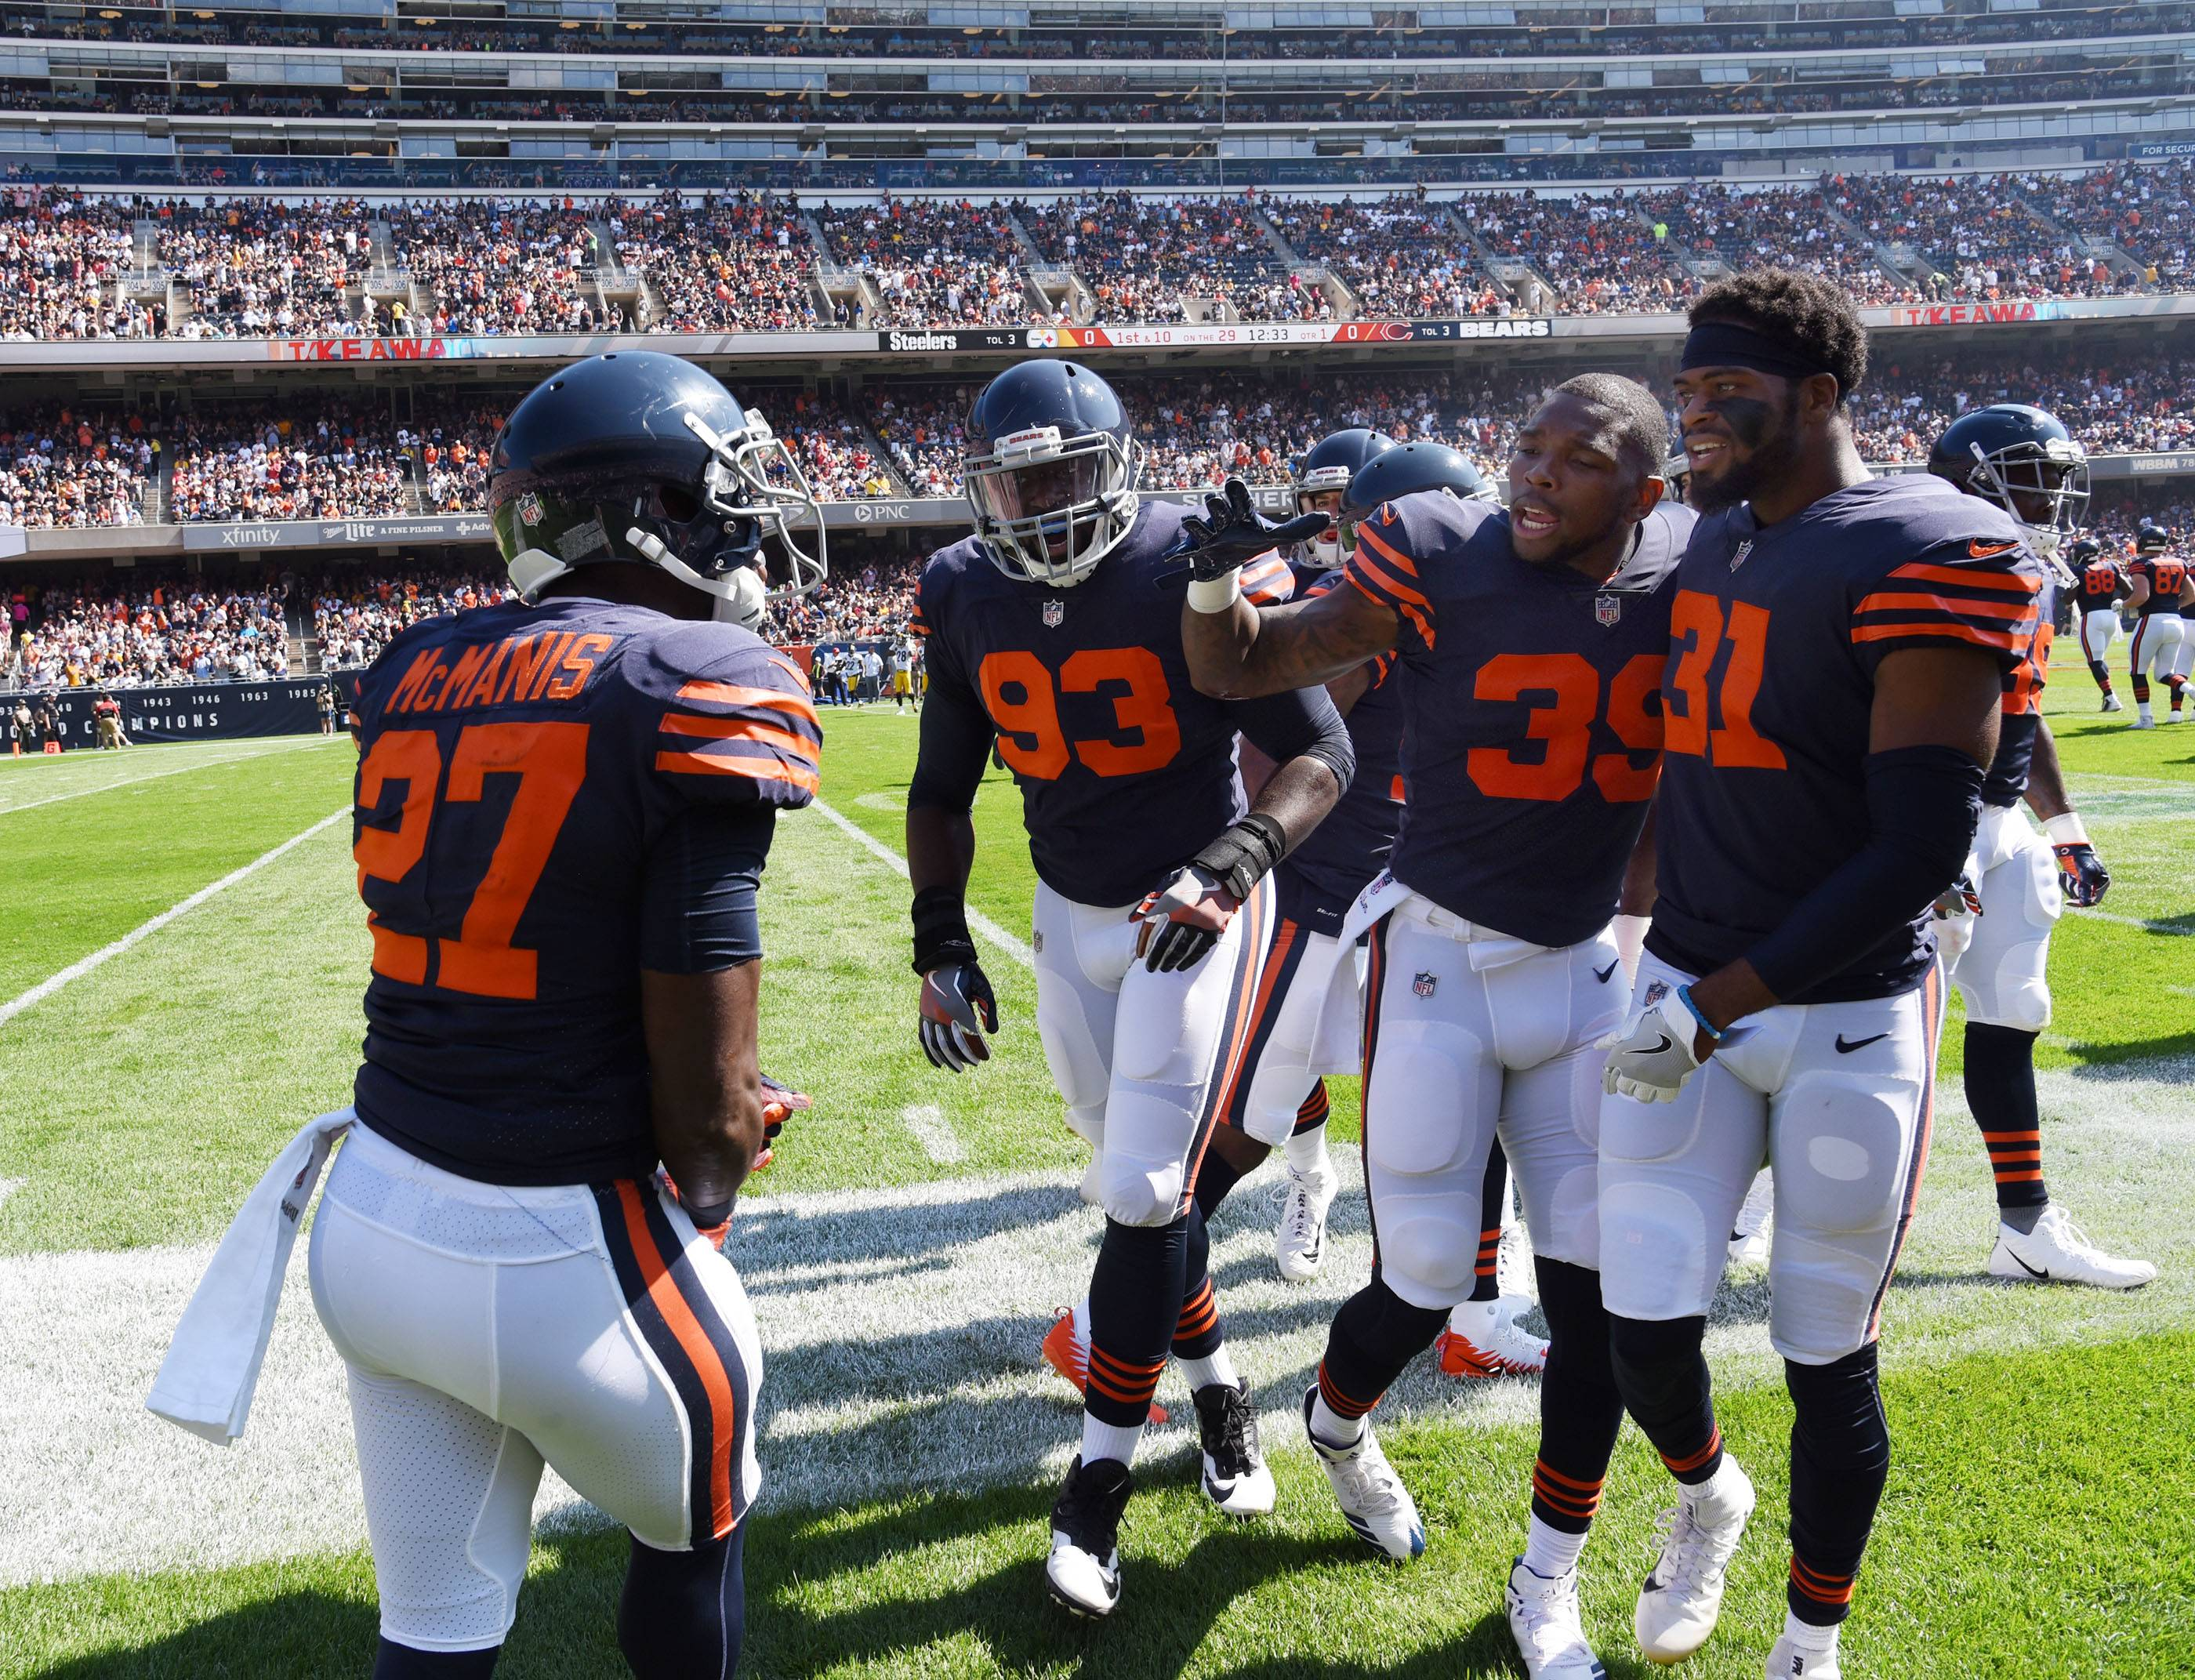 Chicago Bears teammates come to congratulate cornerback Sherrick McManis on his fumble recovery on a kickoff early in the game Sunday at Soldier Field in Chicago. The turnover resulted in a Chicago touchdown.